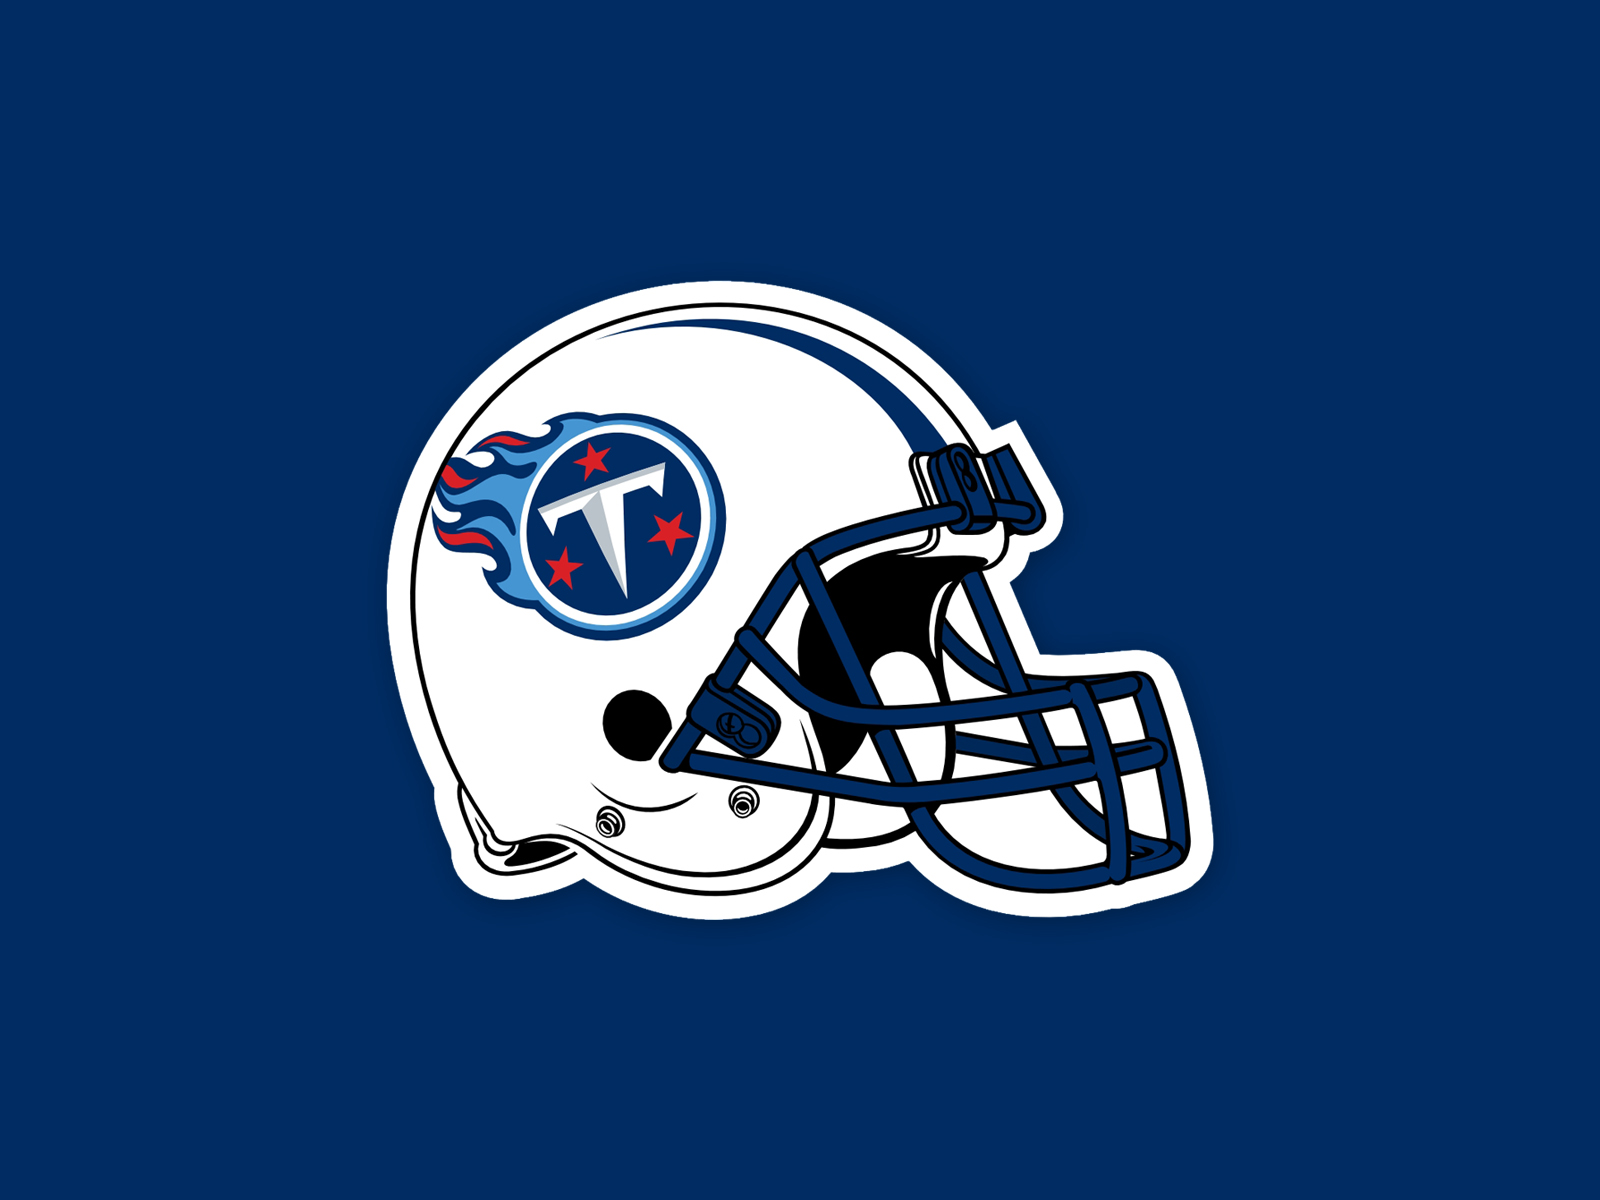 Tennessee Titans Computer Wallpaper 56020 1600x1200px